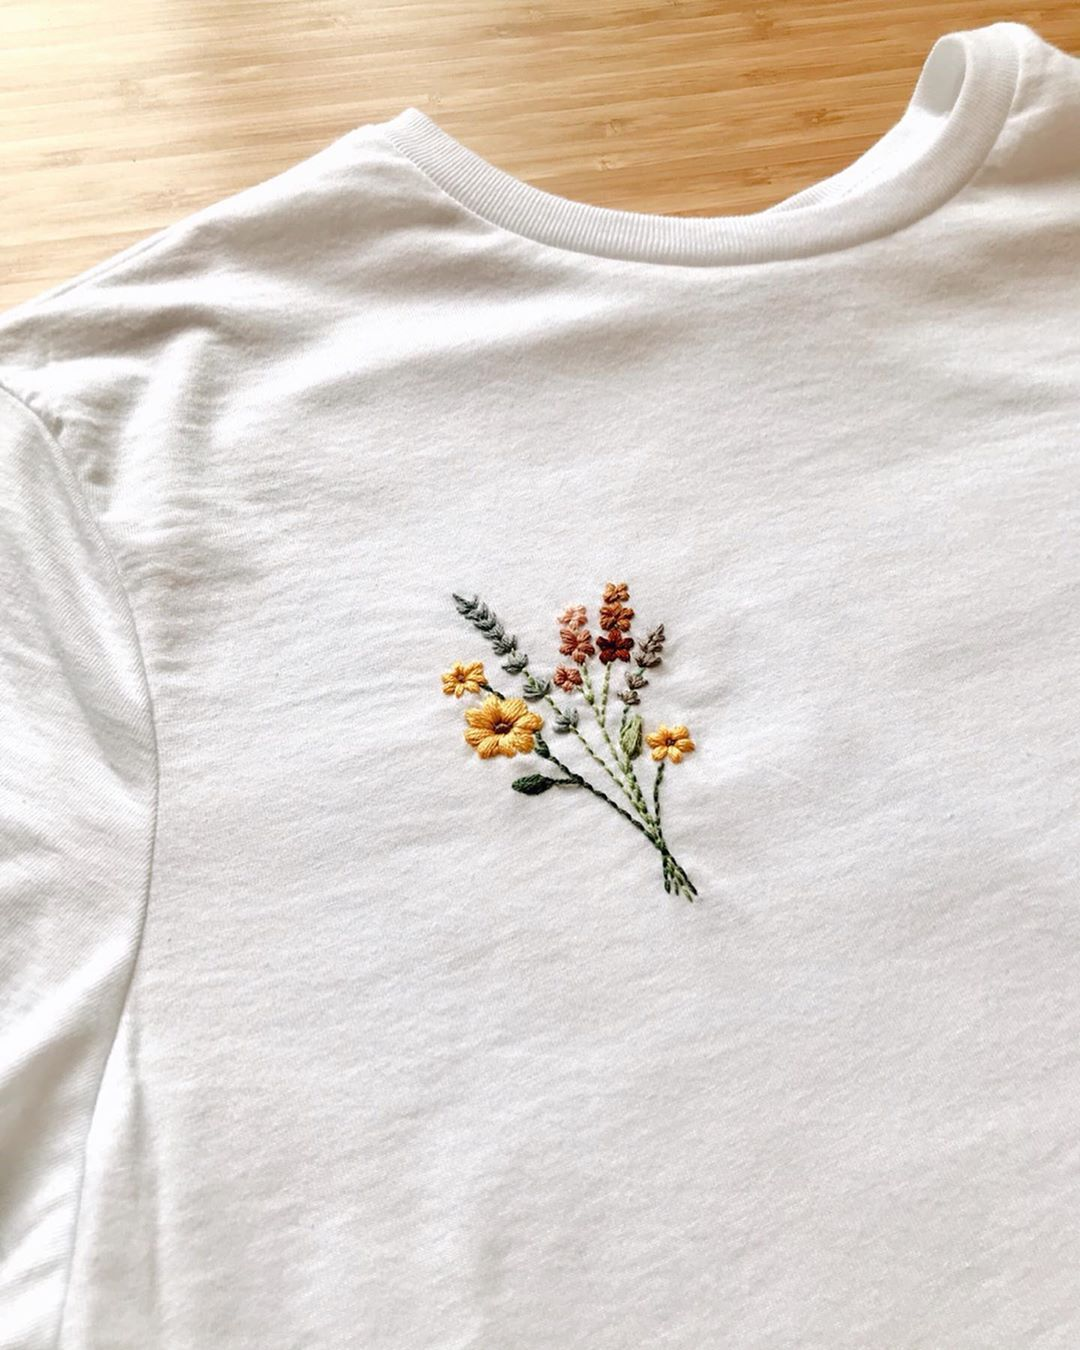 Embroidered By Emily On Instagram I M Actually In Love With How This Custom Shirt T In 2020 Embroidery On Clothes Simple Embroidery Designs Flower Embroidery Designs,Family Tree Tattoo Designs For Women